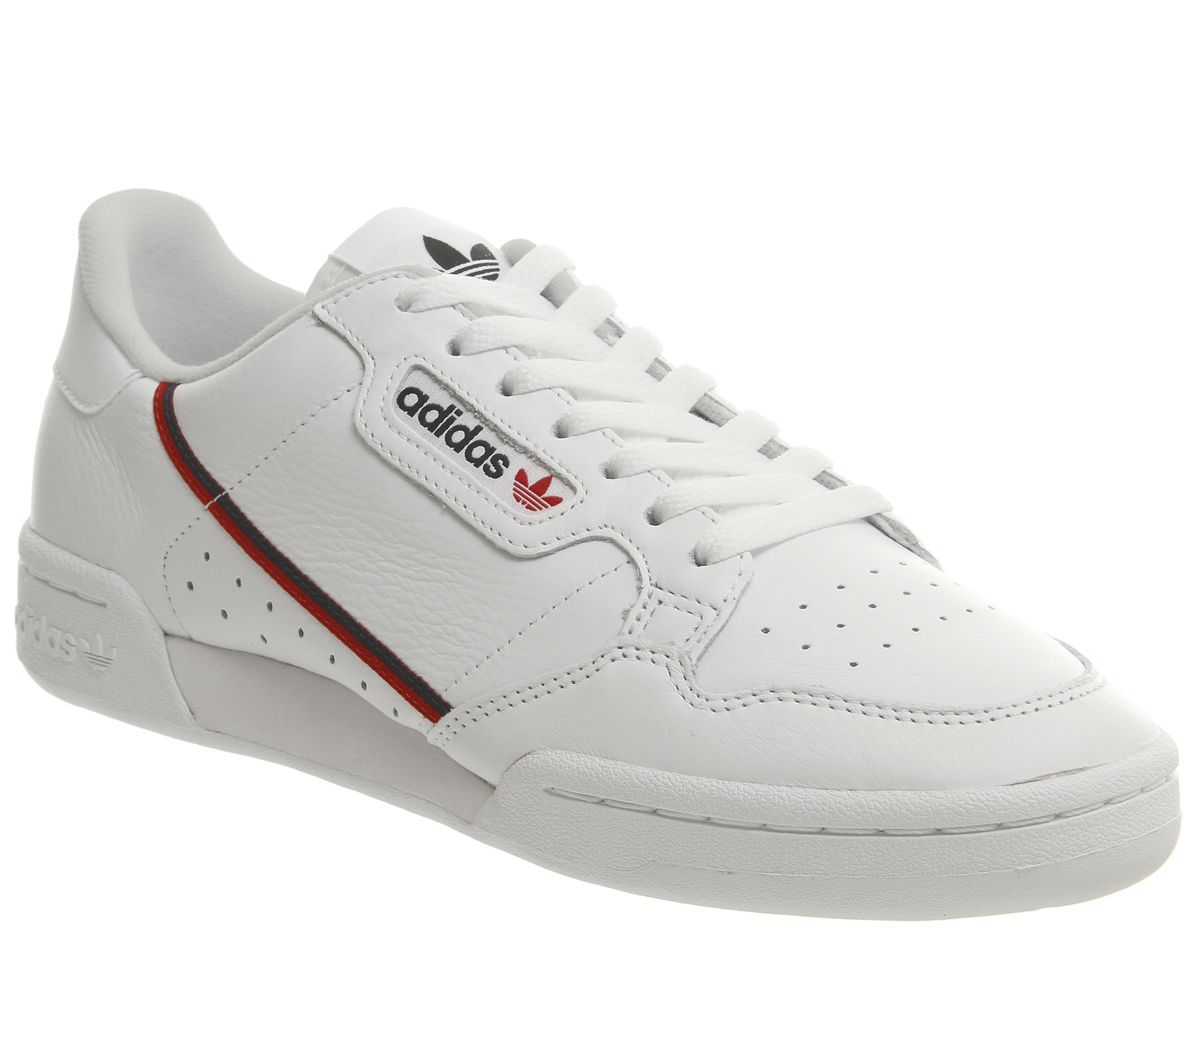 free shipping ec1f1 84675 adidas Continental 80s Trainers White Scarlett Collegiate Navy - His ...